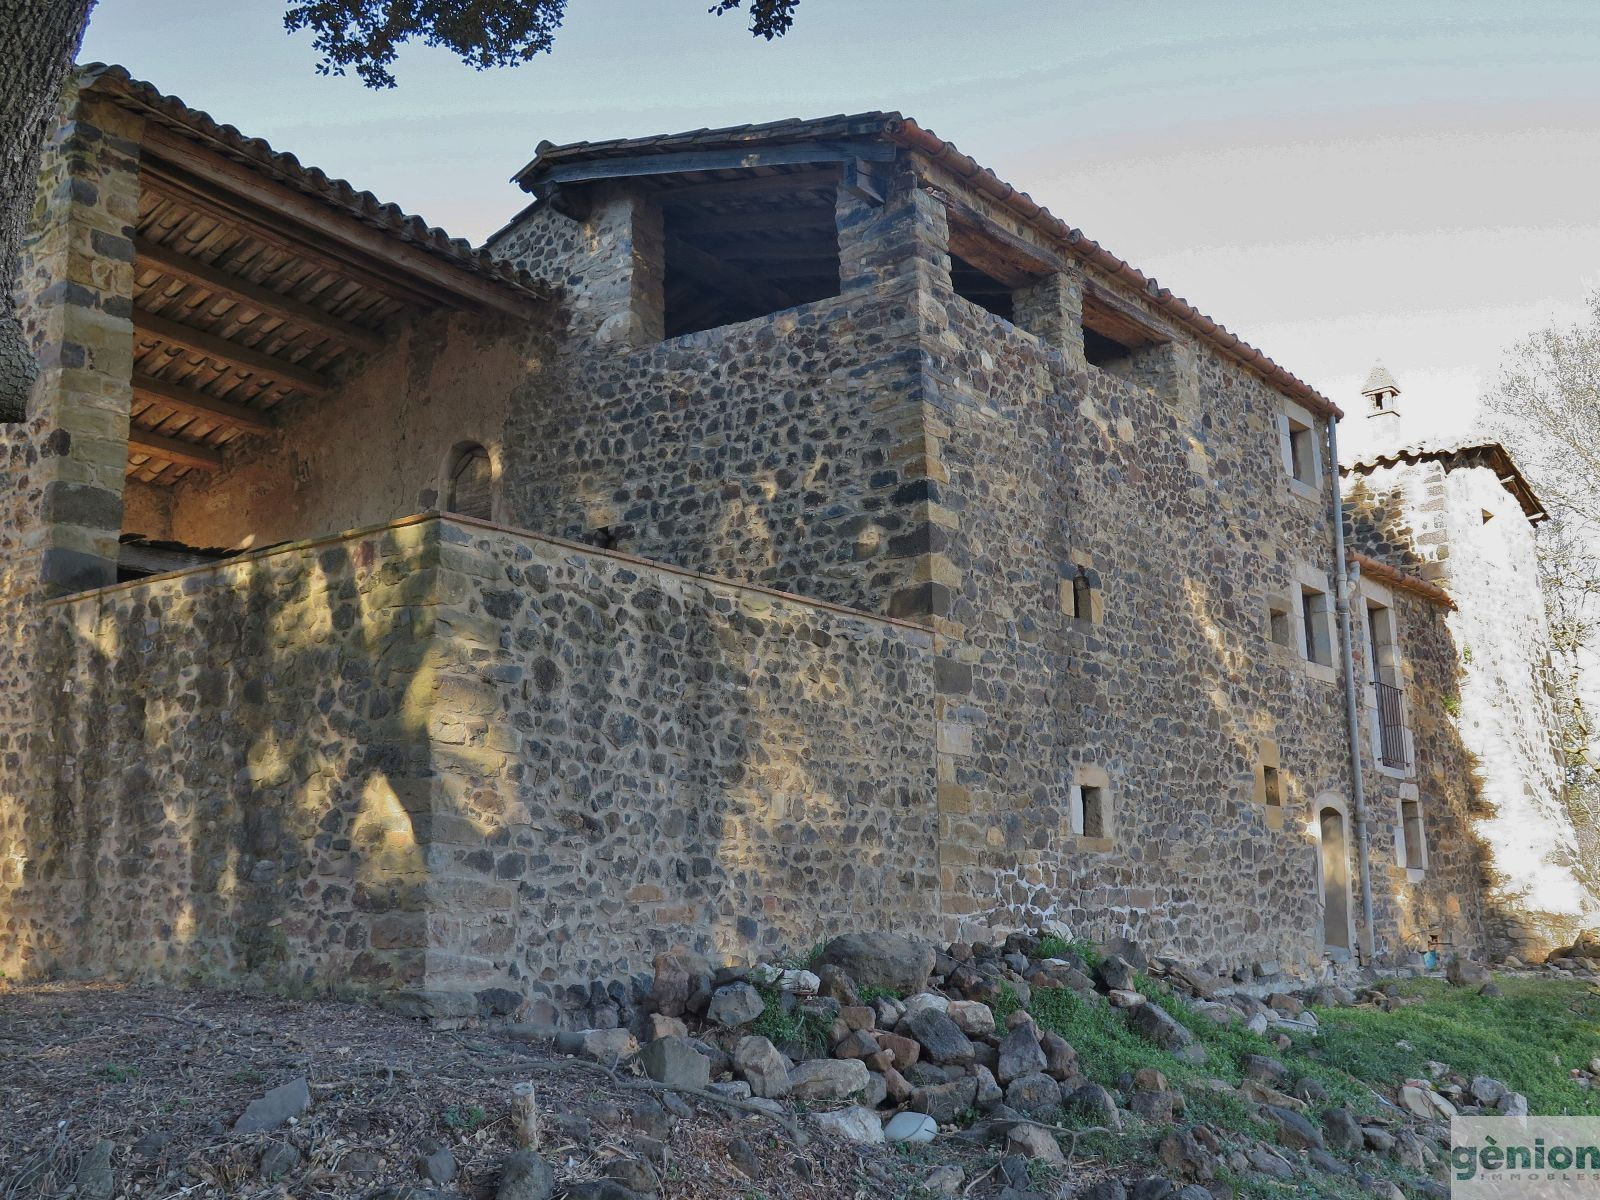 MASIA IN CANET D'ADRI, GIRONÈS. 900M² BUILT AND 14HA OF LAND